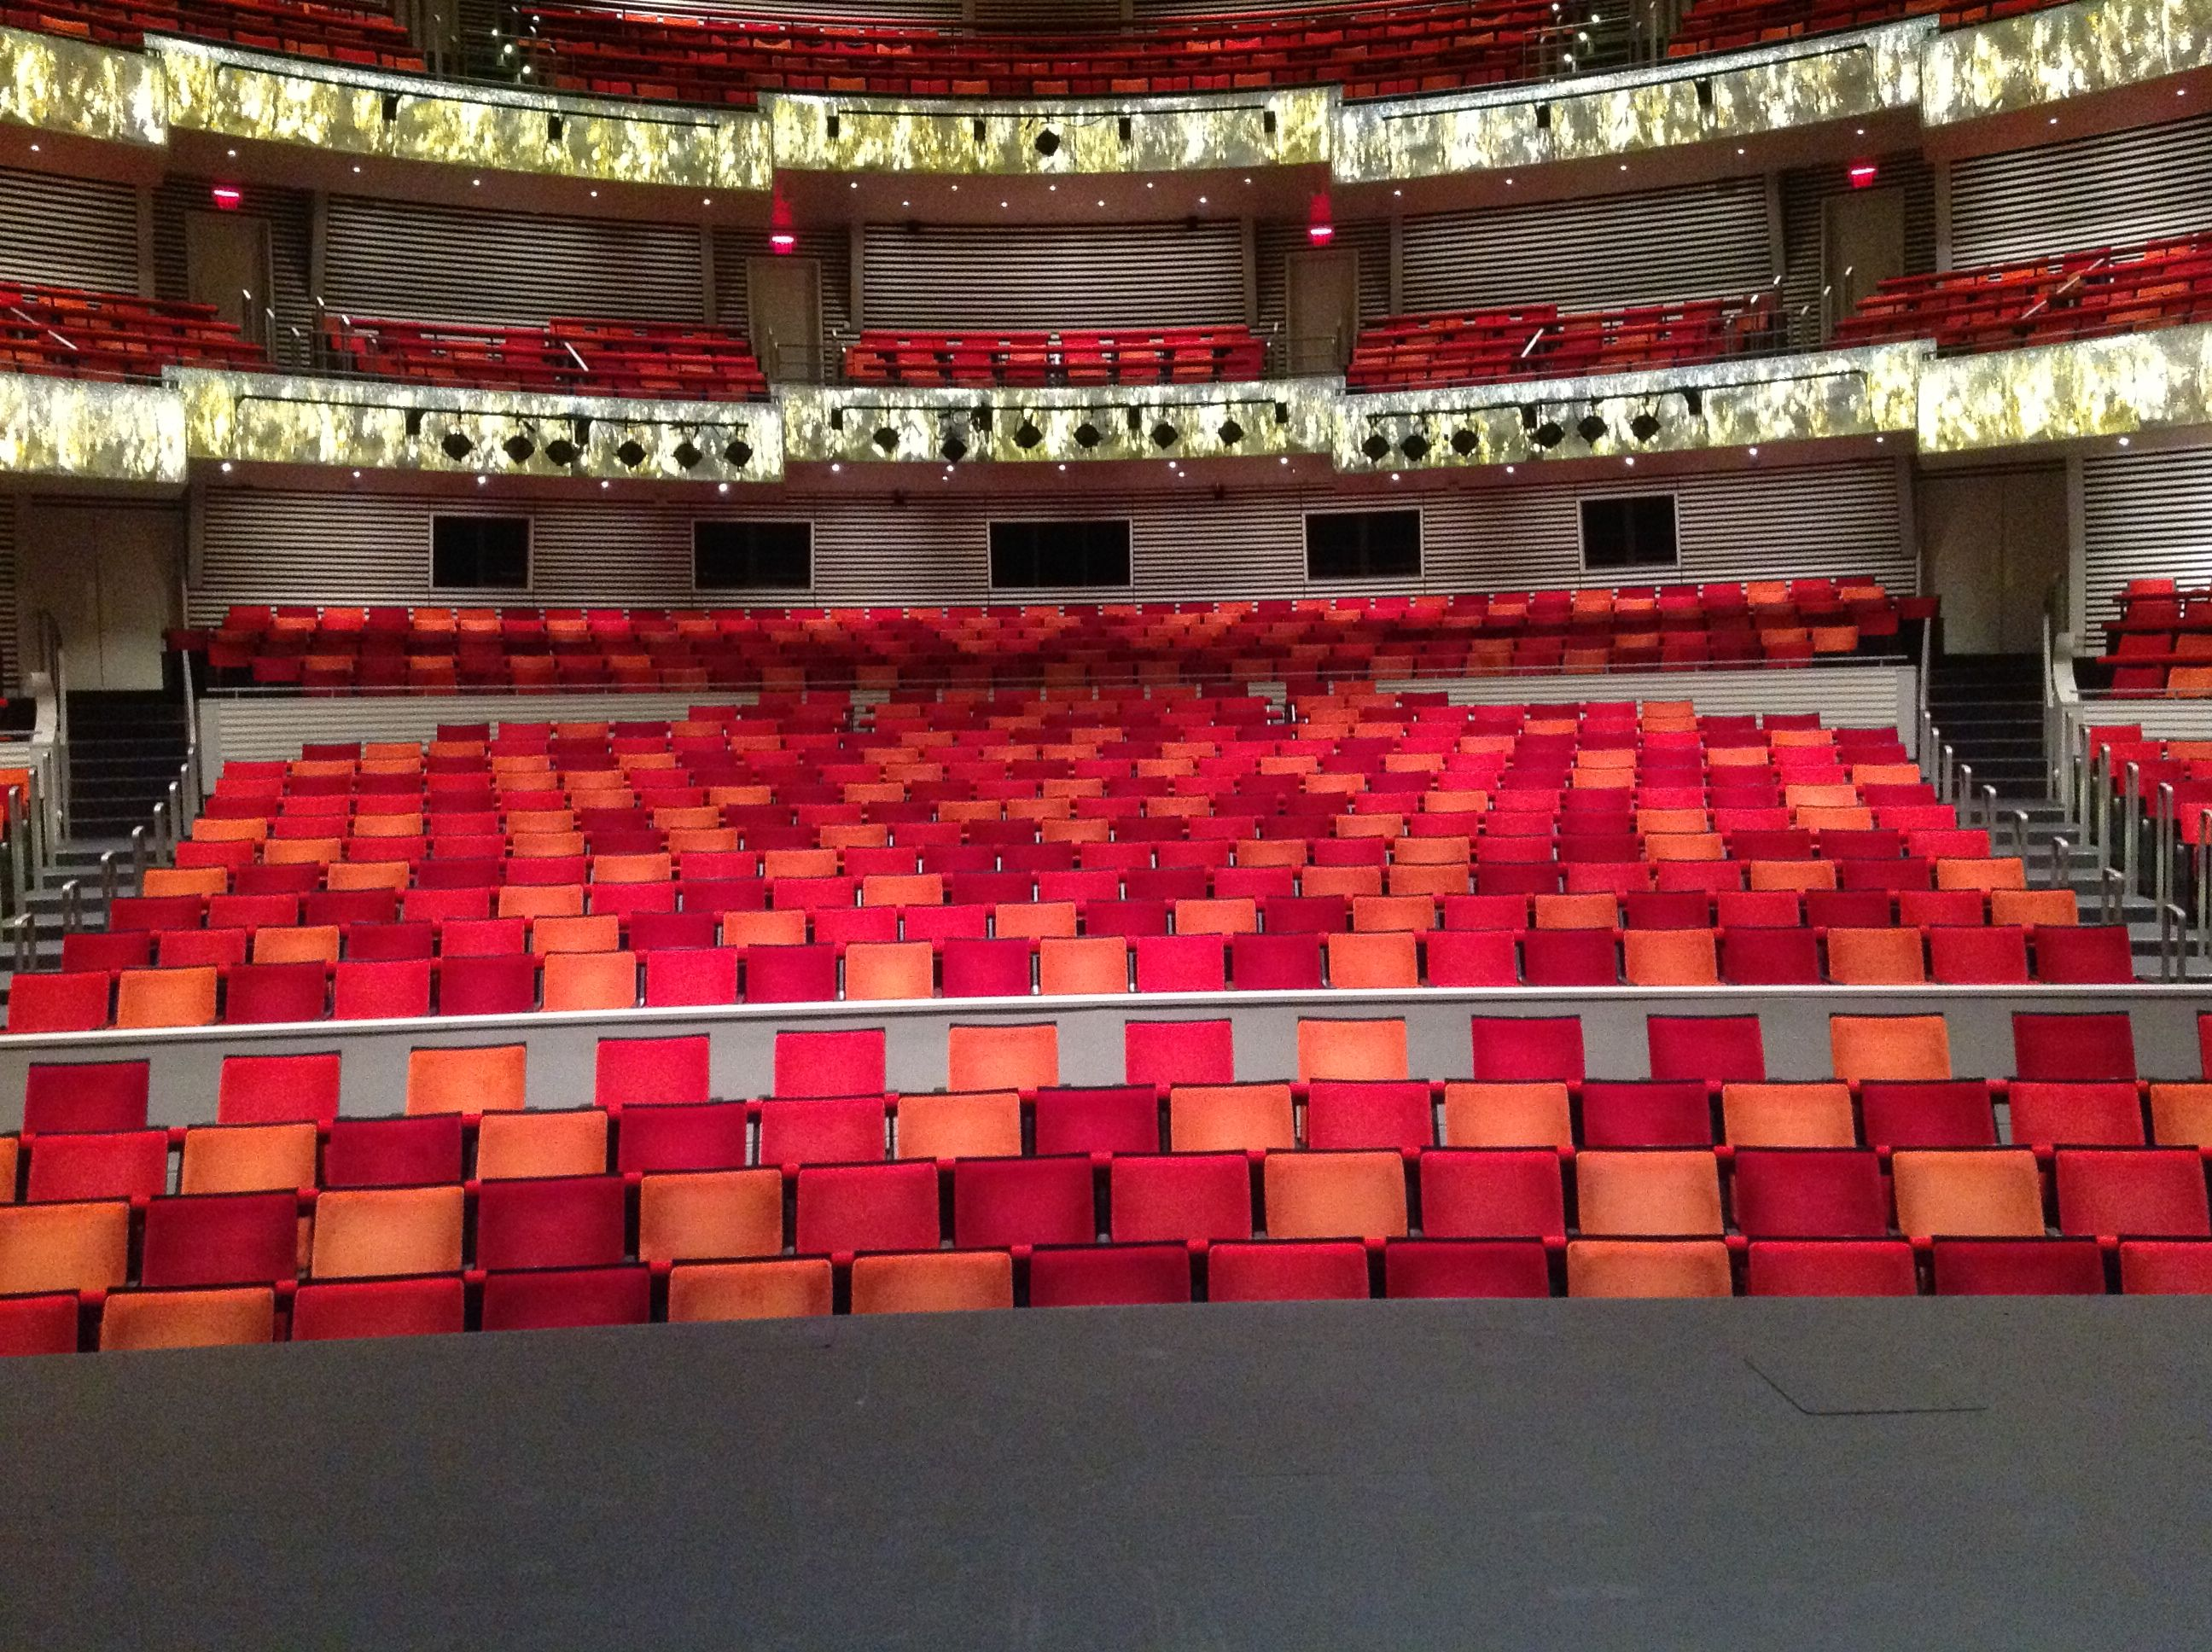 Muriel Kauffman Theatre Seating Theater Seating Event Space Kauffman